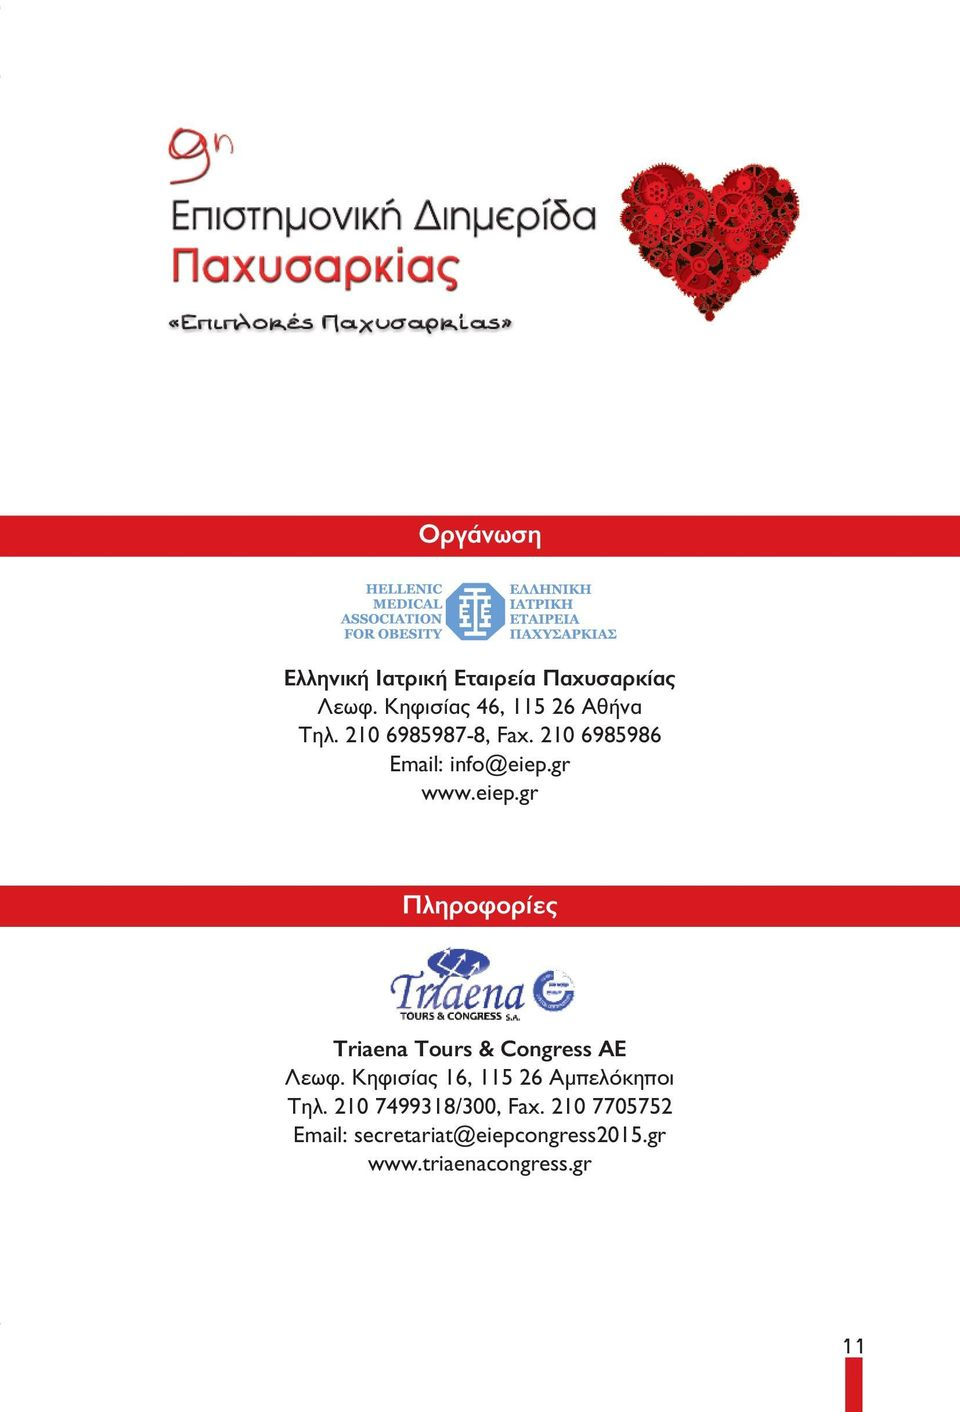 gr www.eiep.gr Πληροφορίες Triaena Tours & Congress AE Λεωφ.